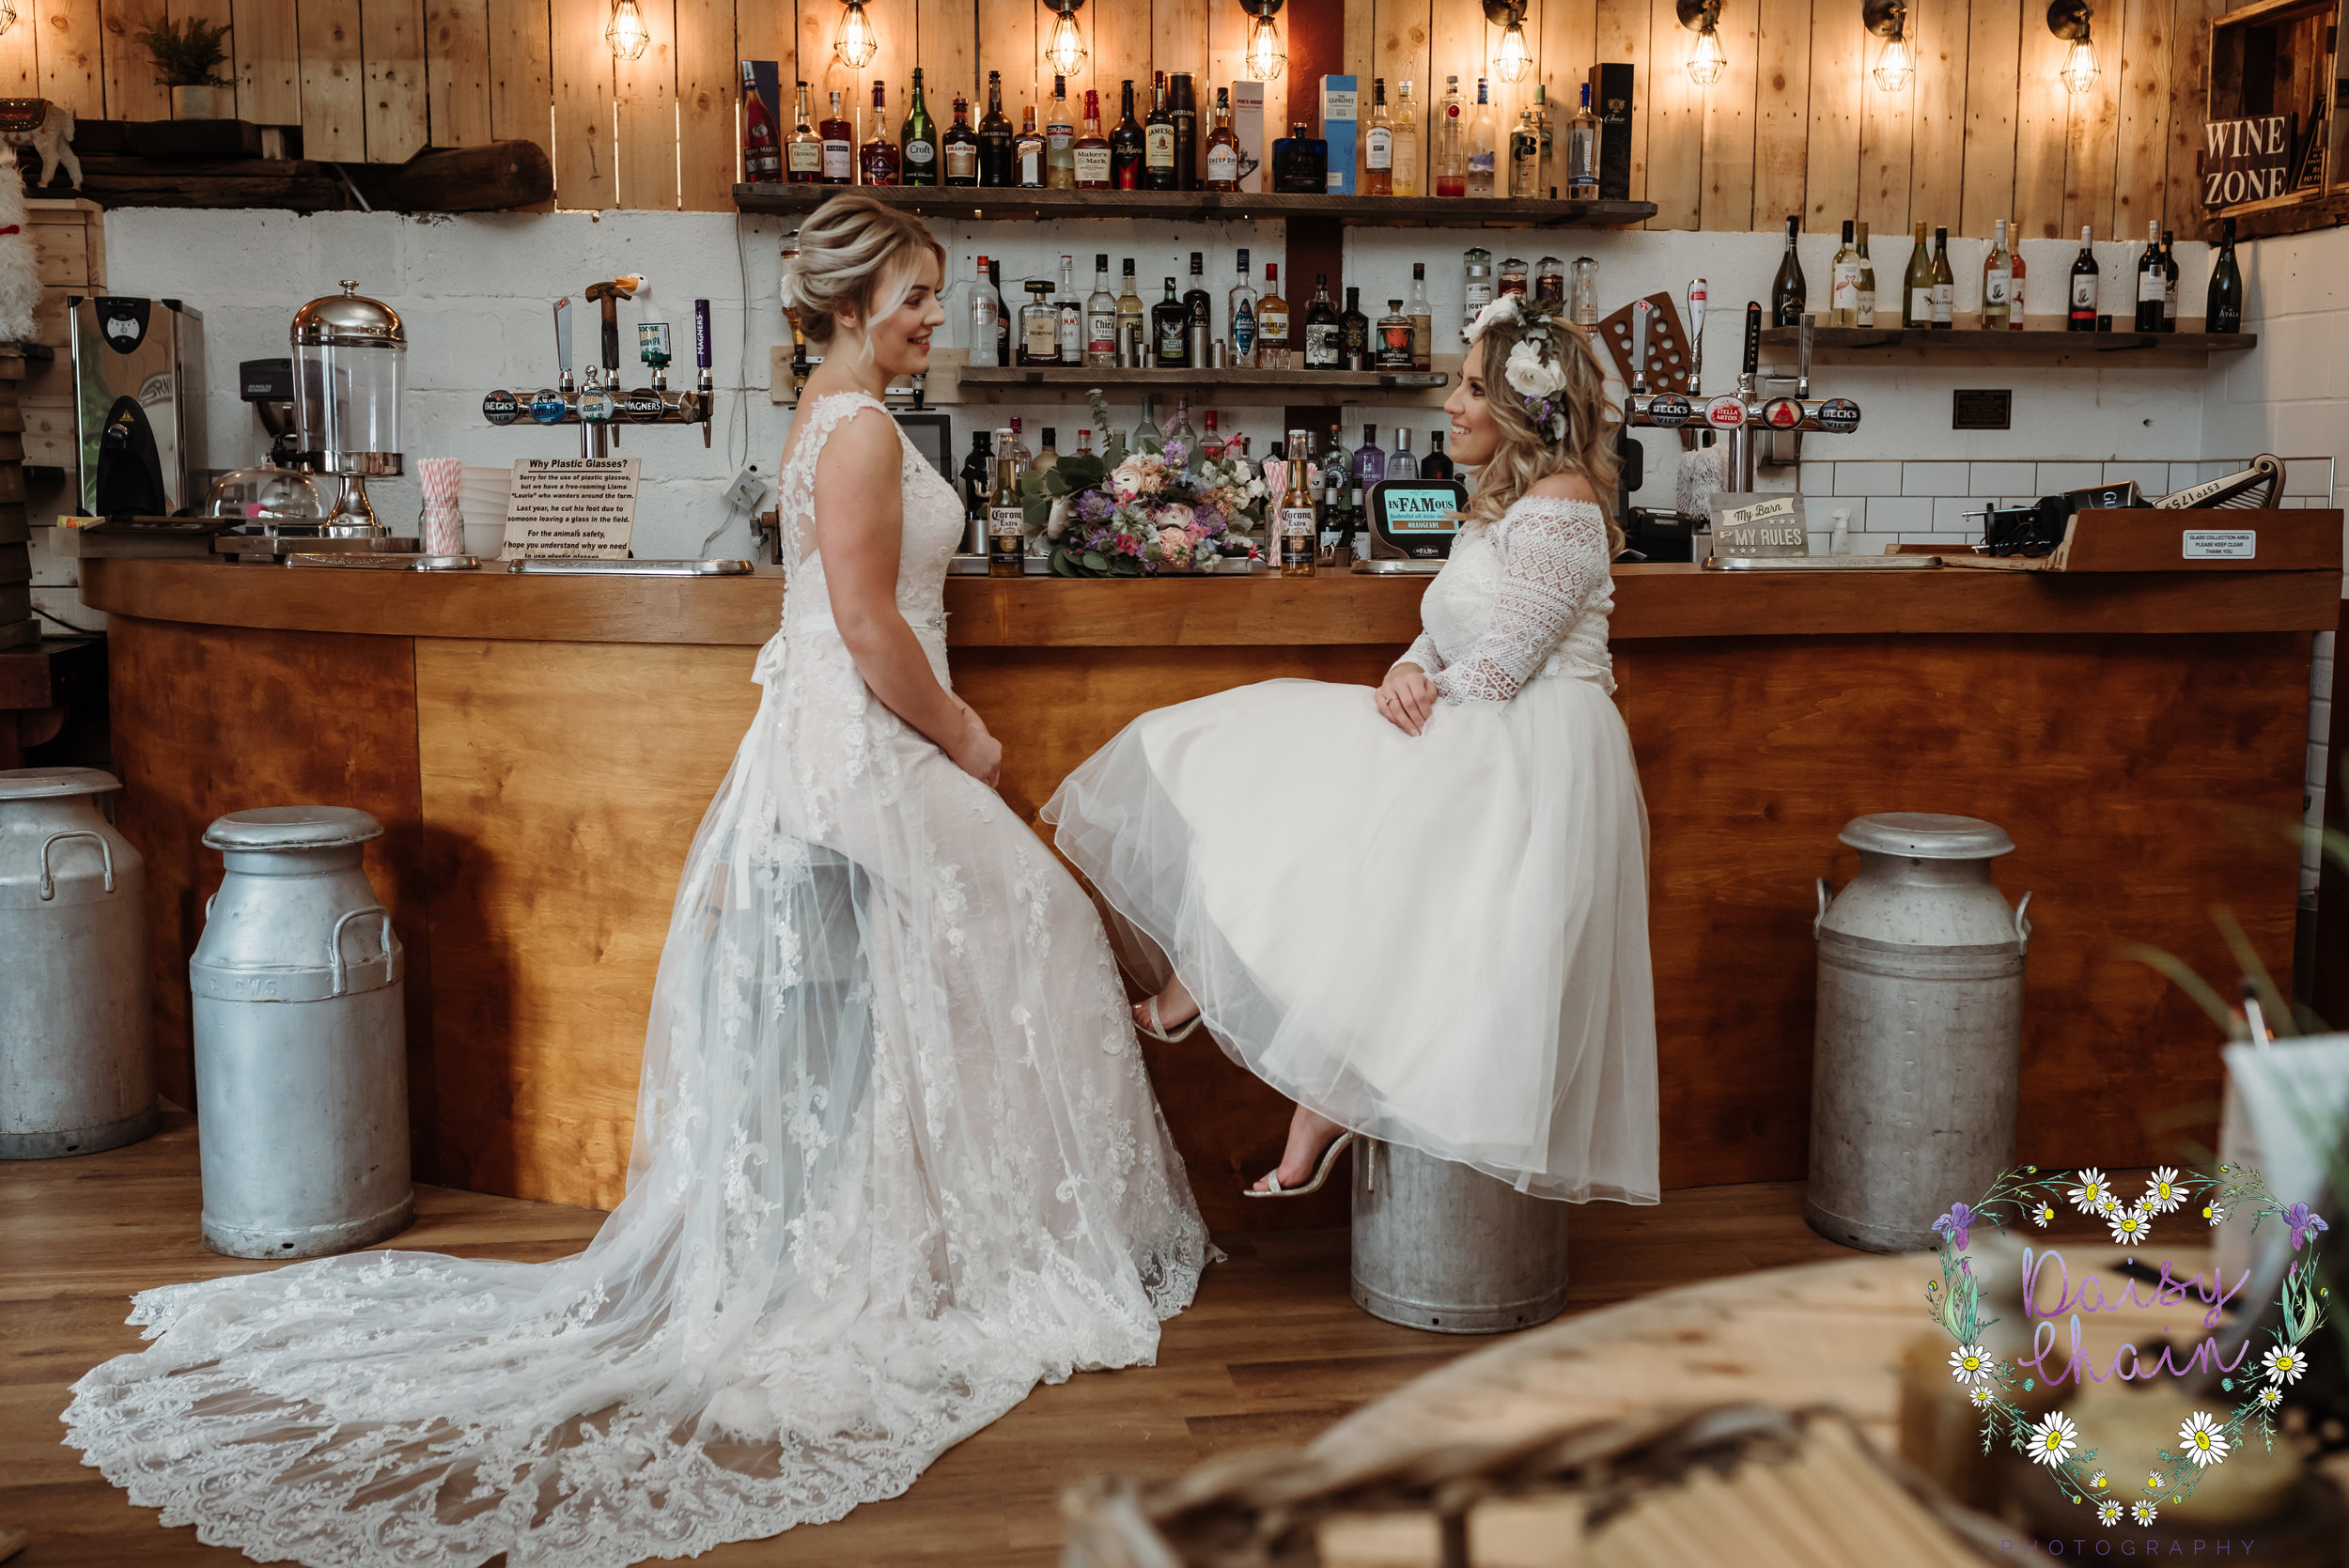 Milk churn bar stools - lancashire wedding